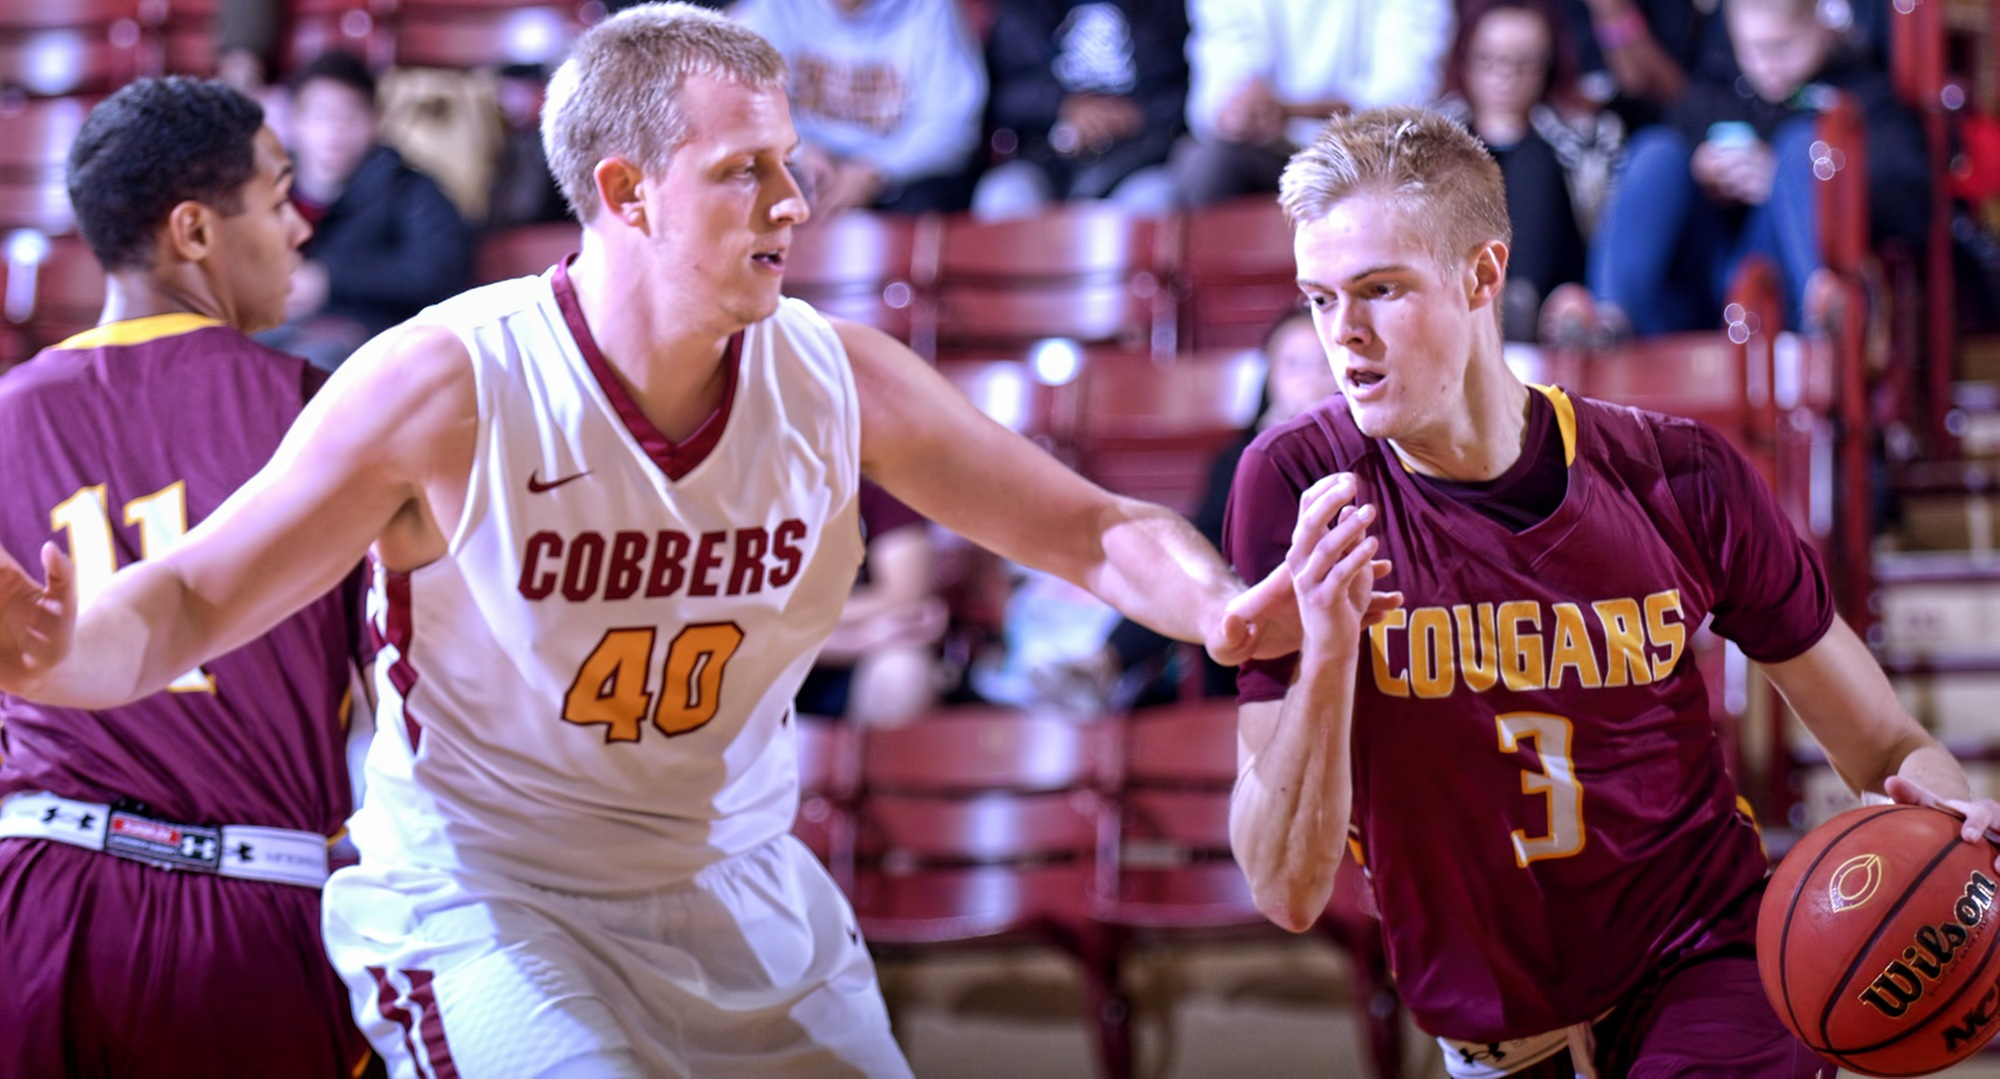 Concordia senior Austin Heins had career-high totals in points in rebounds as he helped the Cobbers' earn an 80-71 win over Minn.-Morris in the season opener.